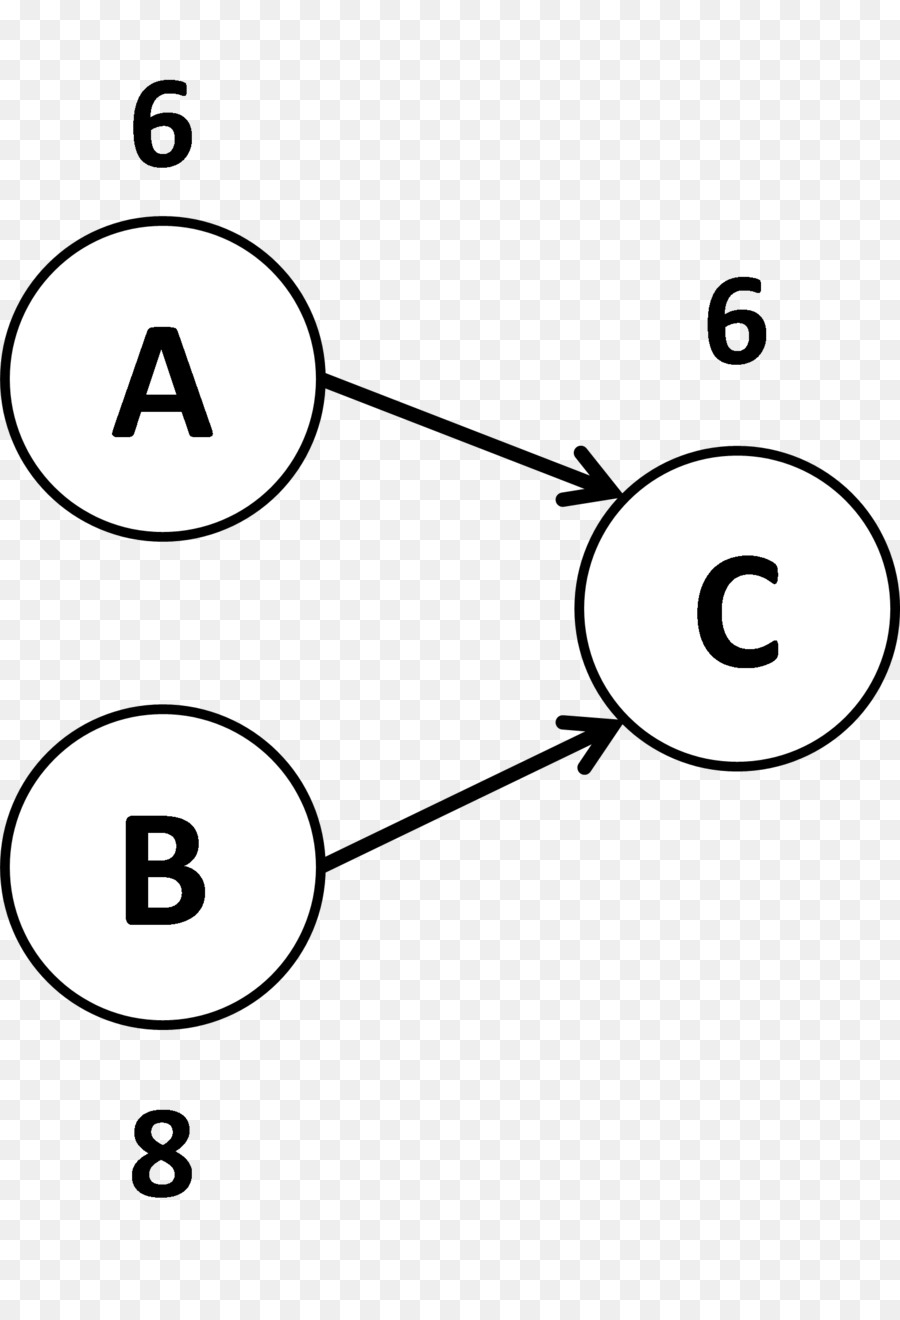 medium resolution of microsoft visio diagram venn diagram line line art png